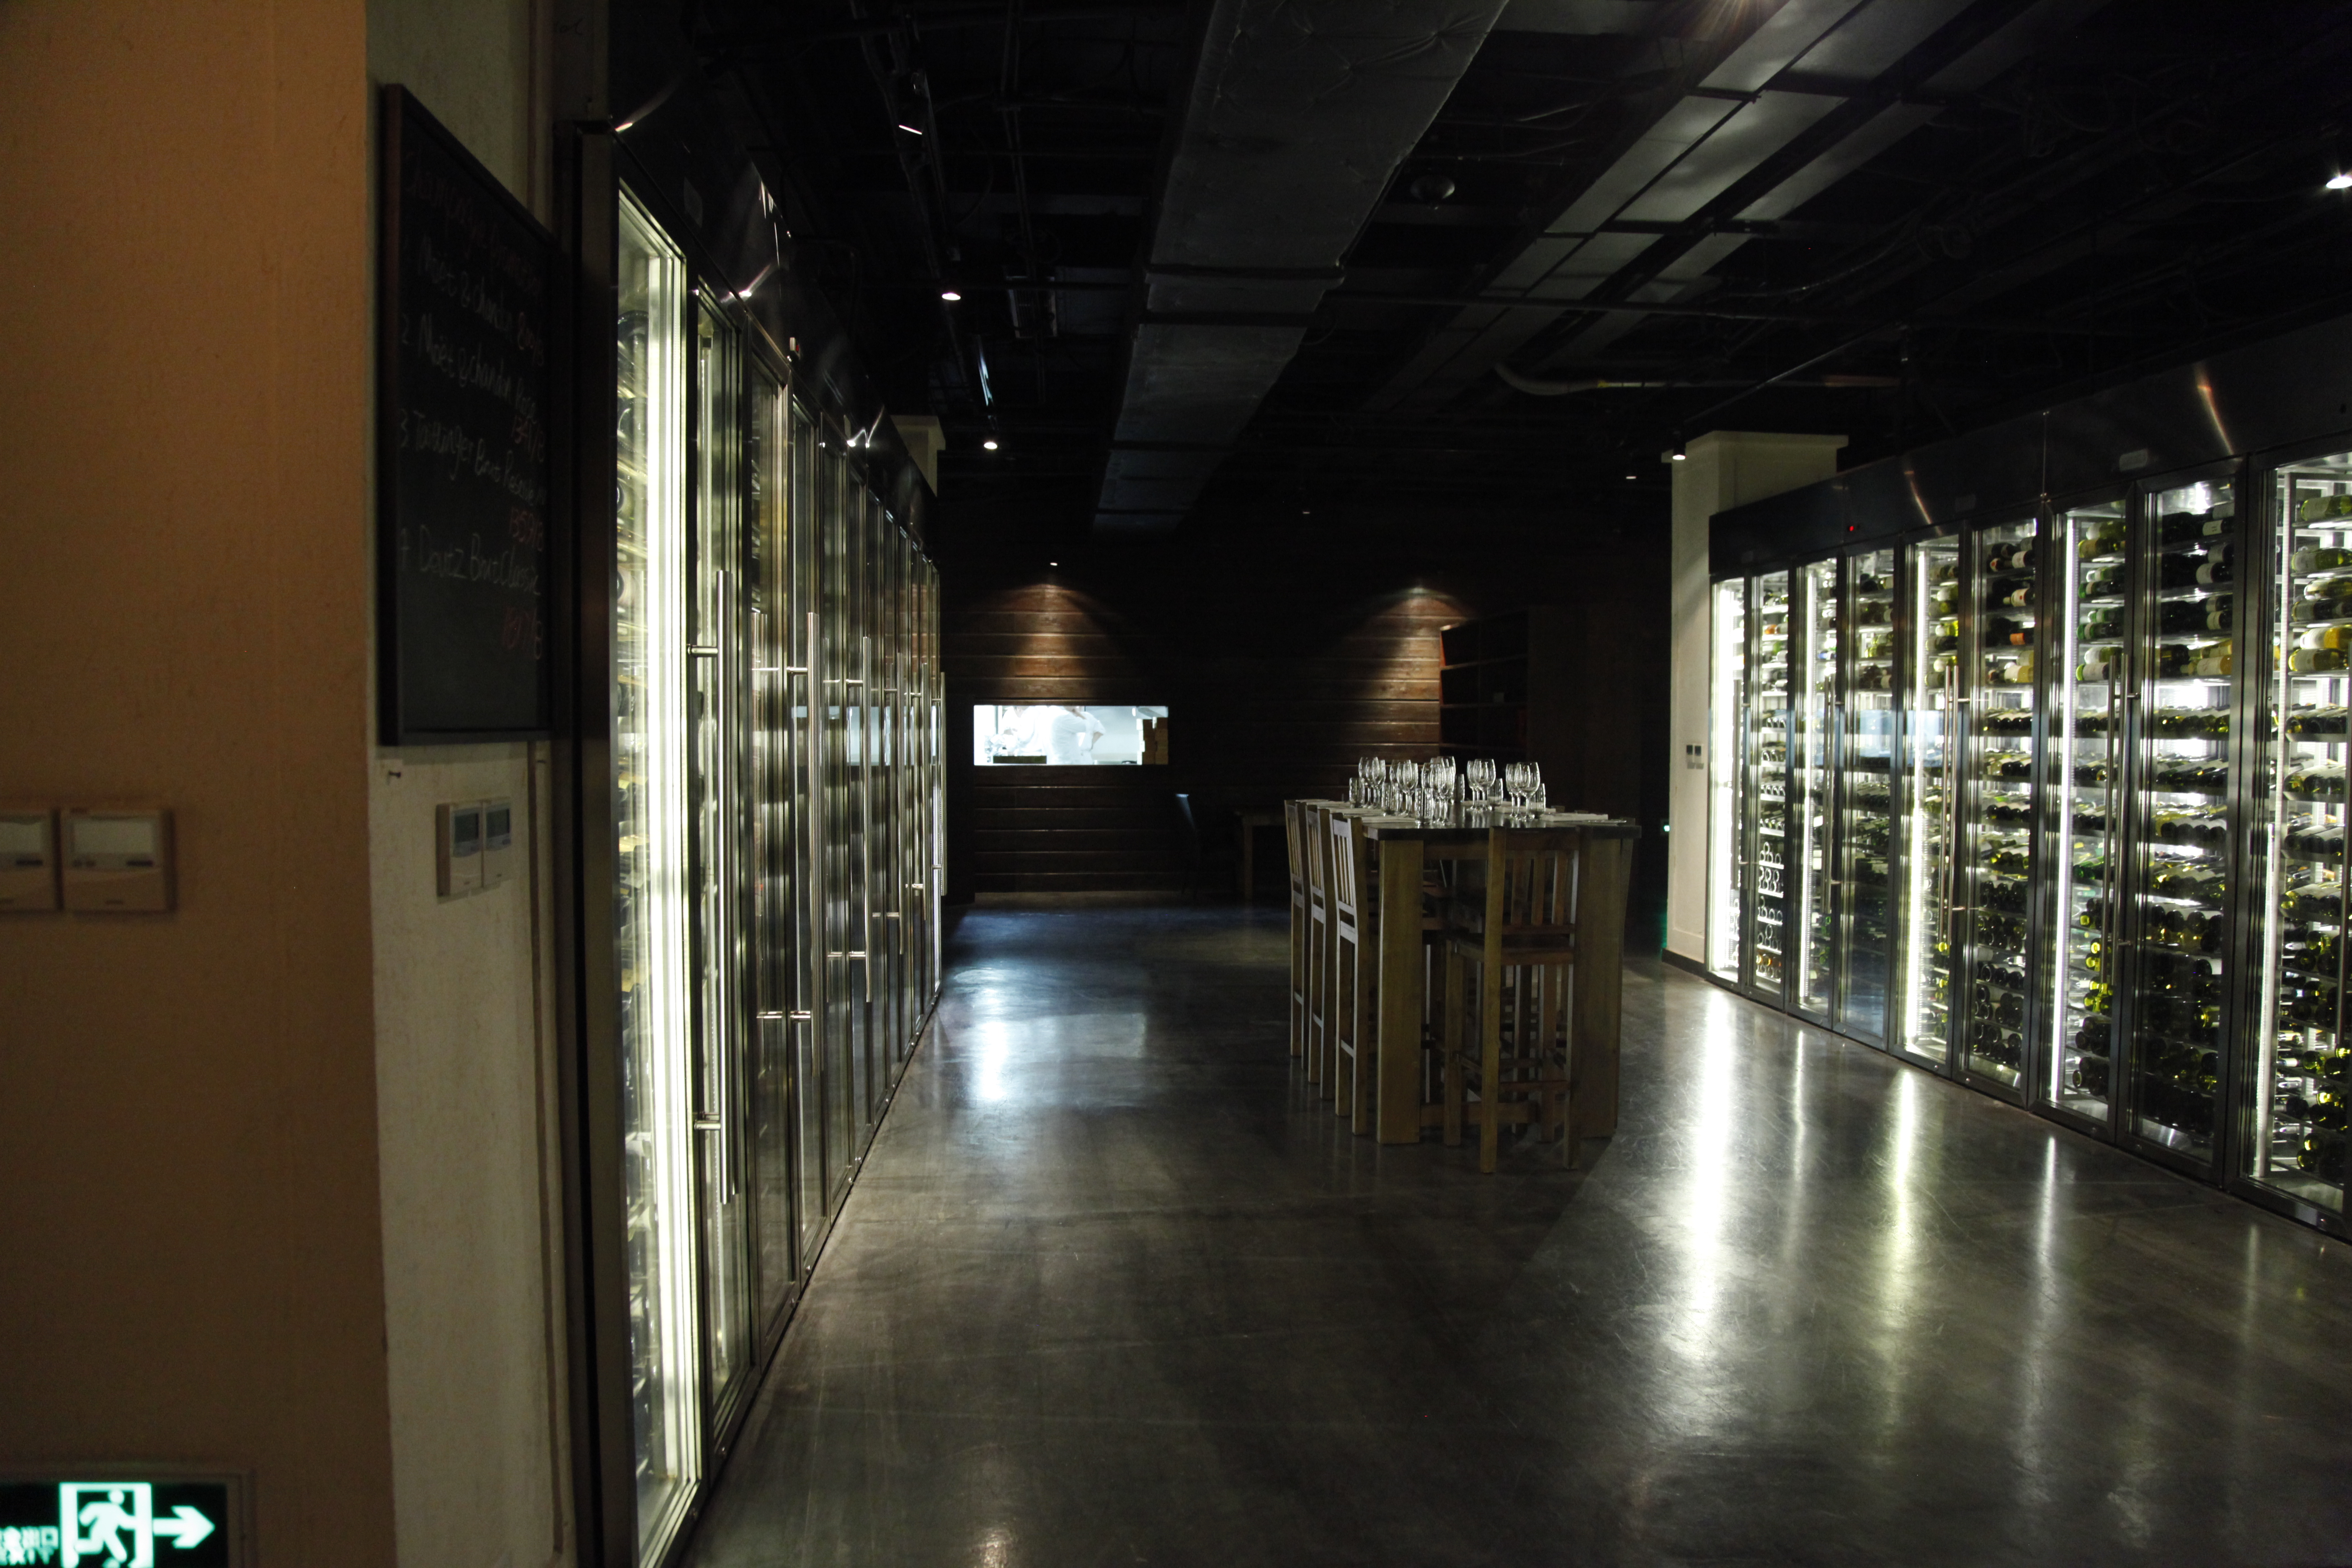 The white wines ready to drink in the chilling cellars